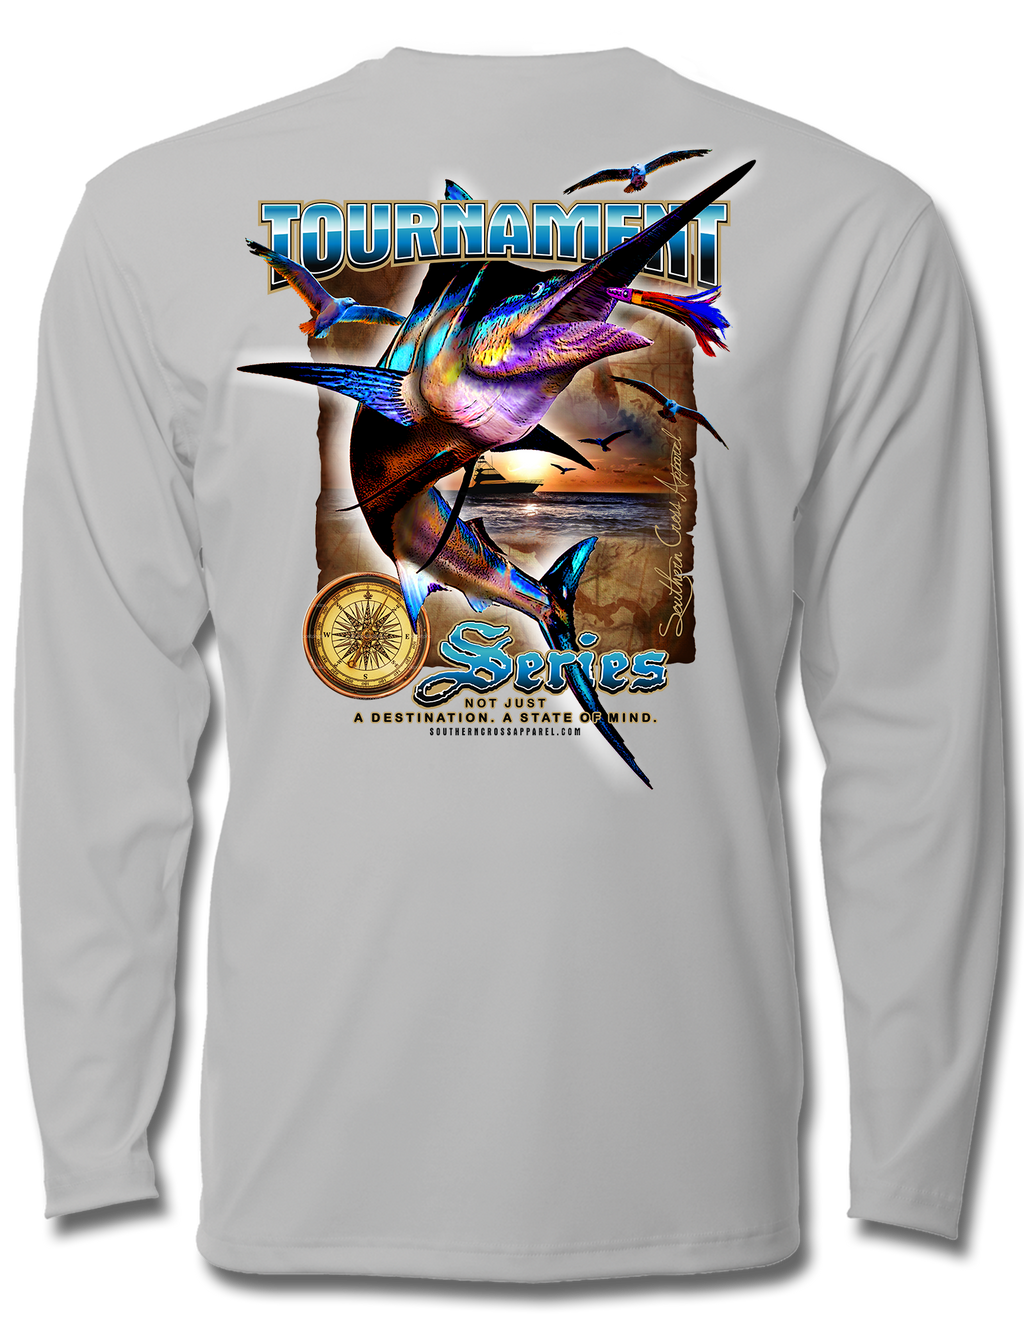 Tournament Series Performance Gear, Performance Gear - Southern Cross Apparel